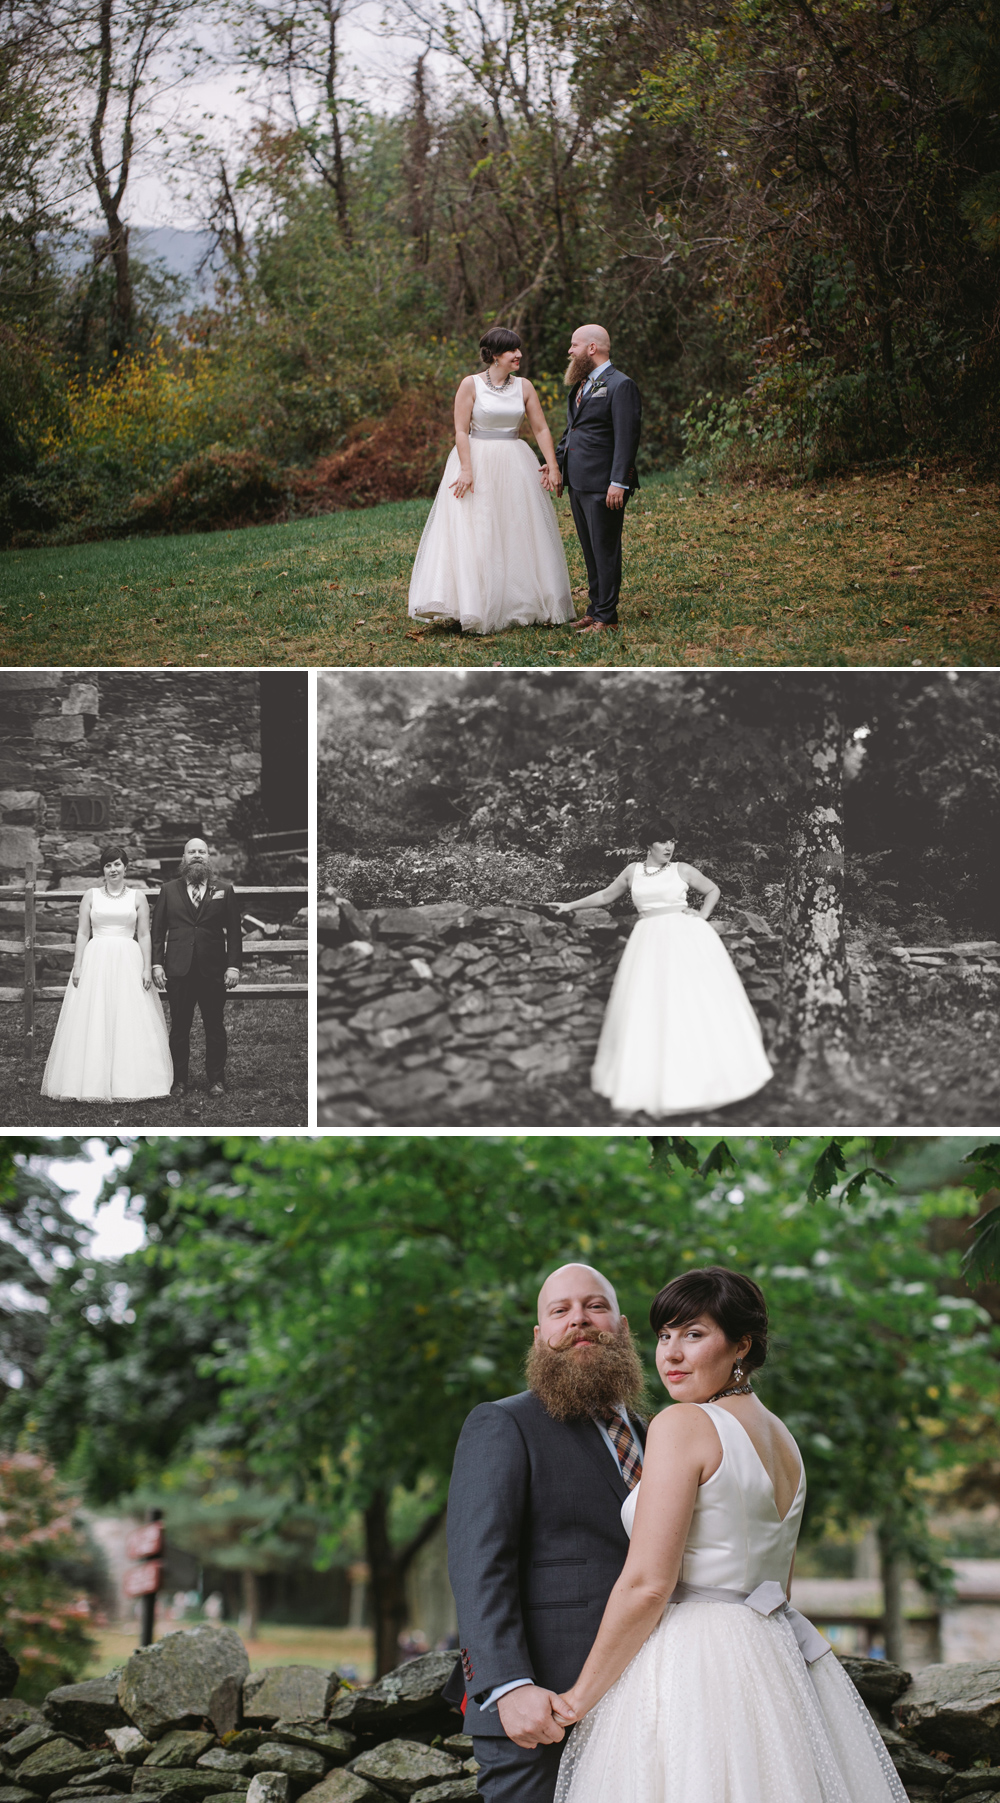 camp wedding, philadelphia wedding photographer, maple tree house camp wedding